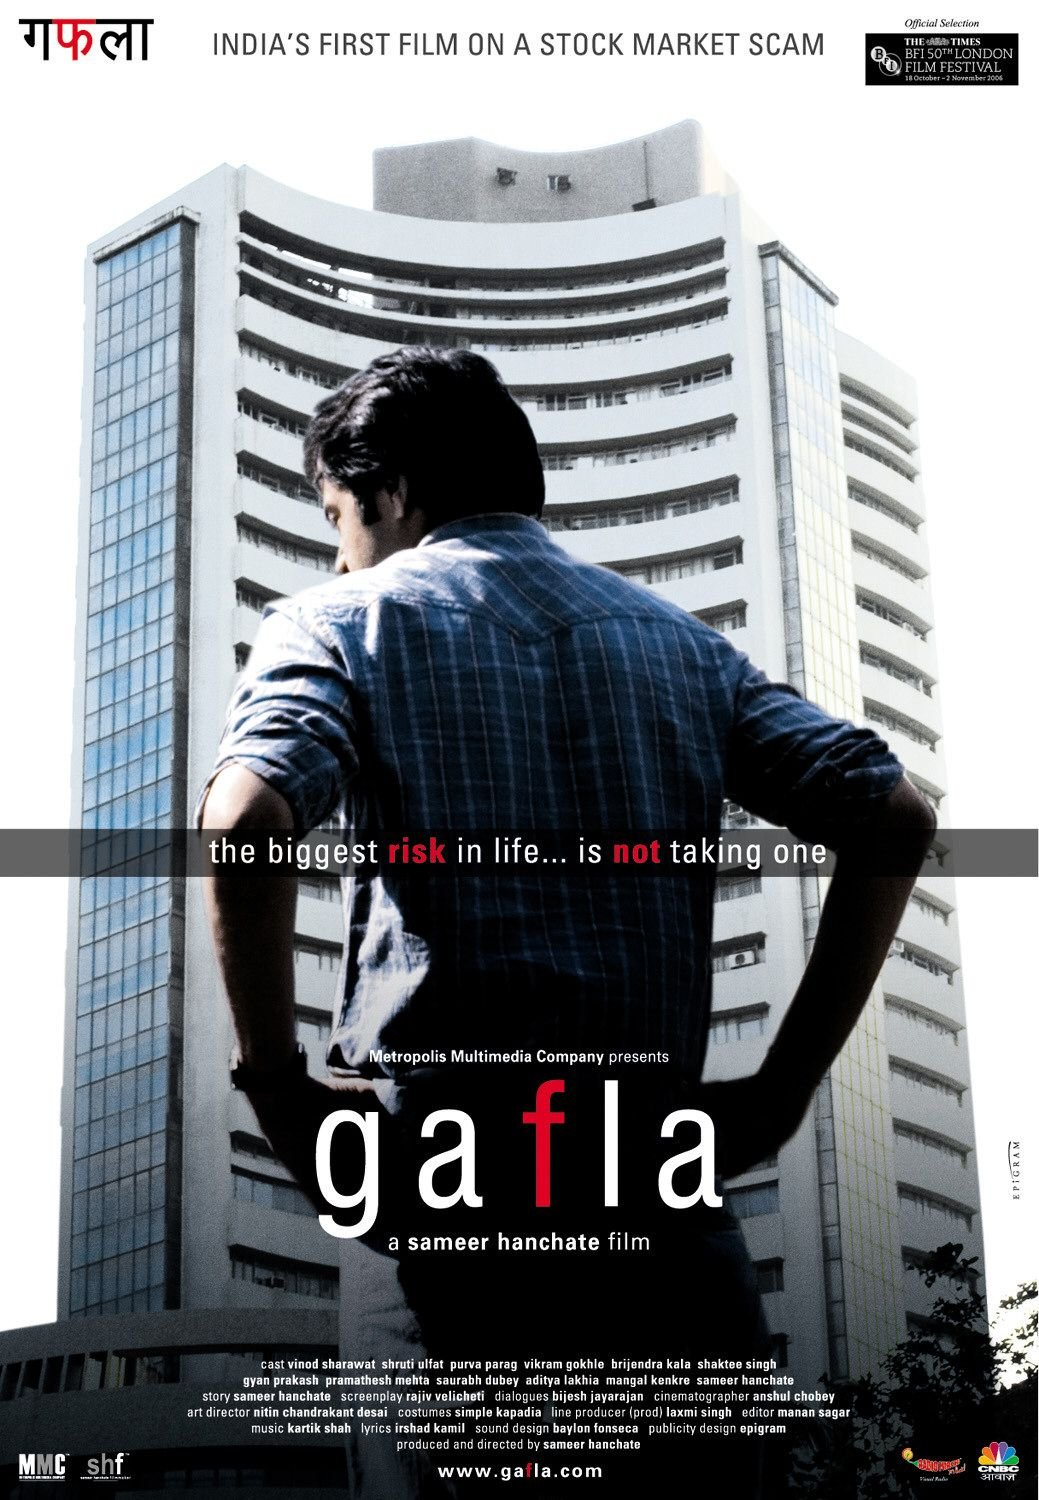 Gafla Movie at Best Stock Market movies article - Arable Life